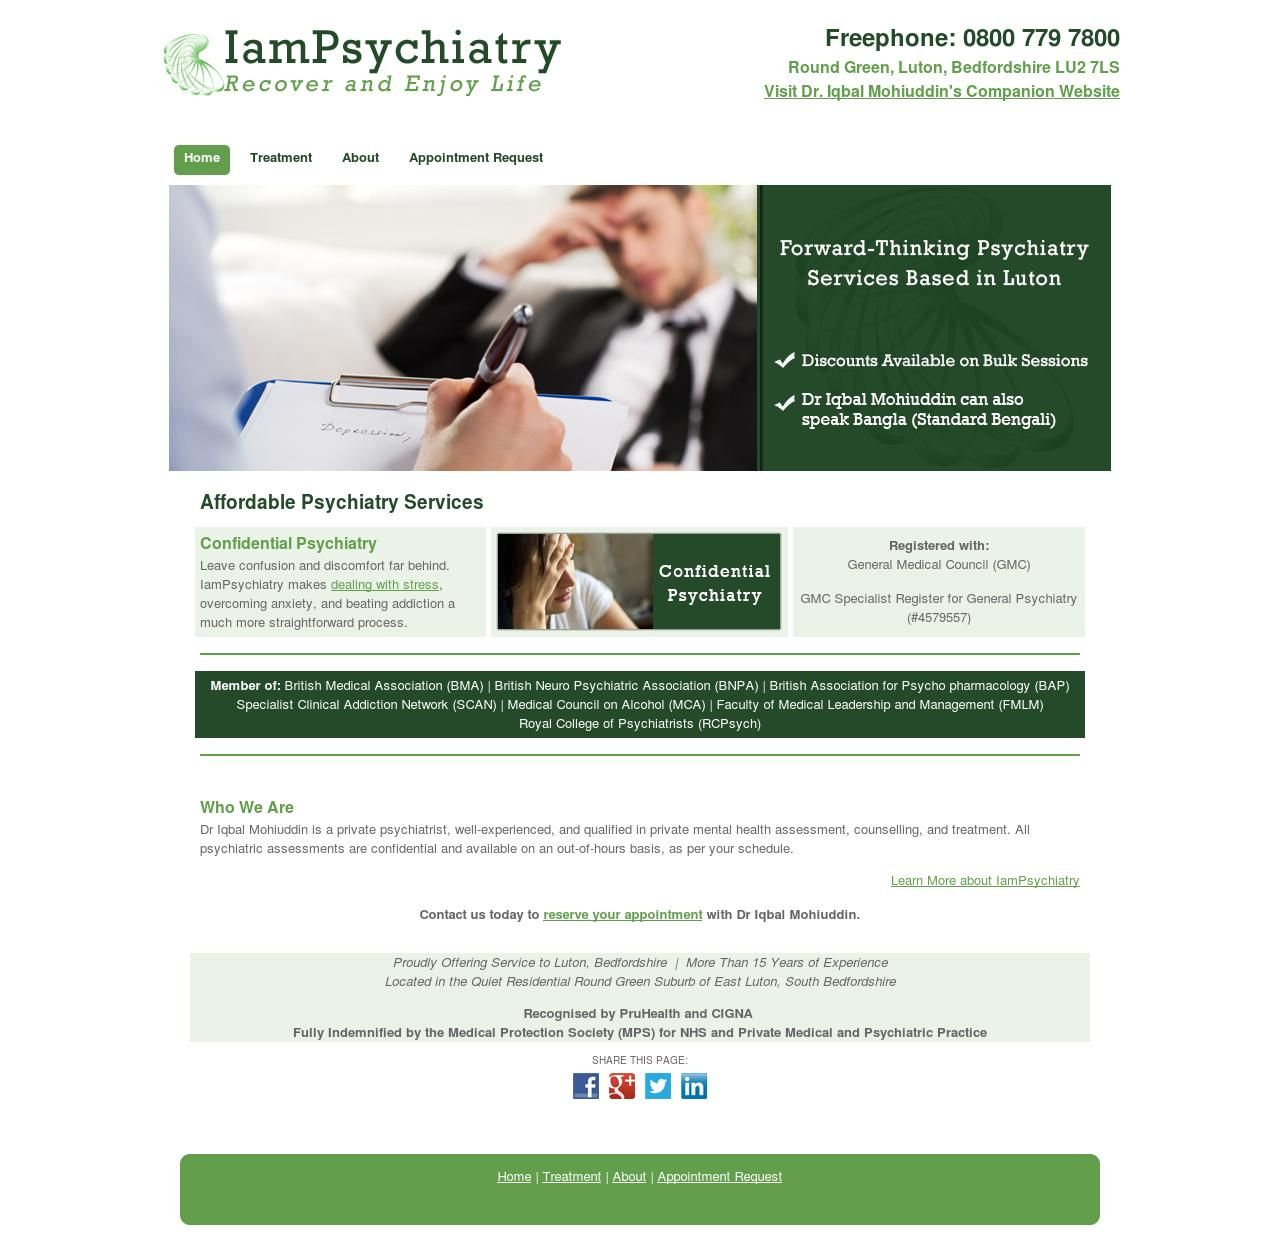 Iam Psychiatry Makes Dealing With Stress Overcoming Anxiety And